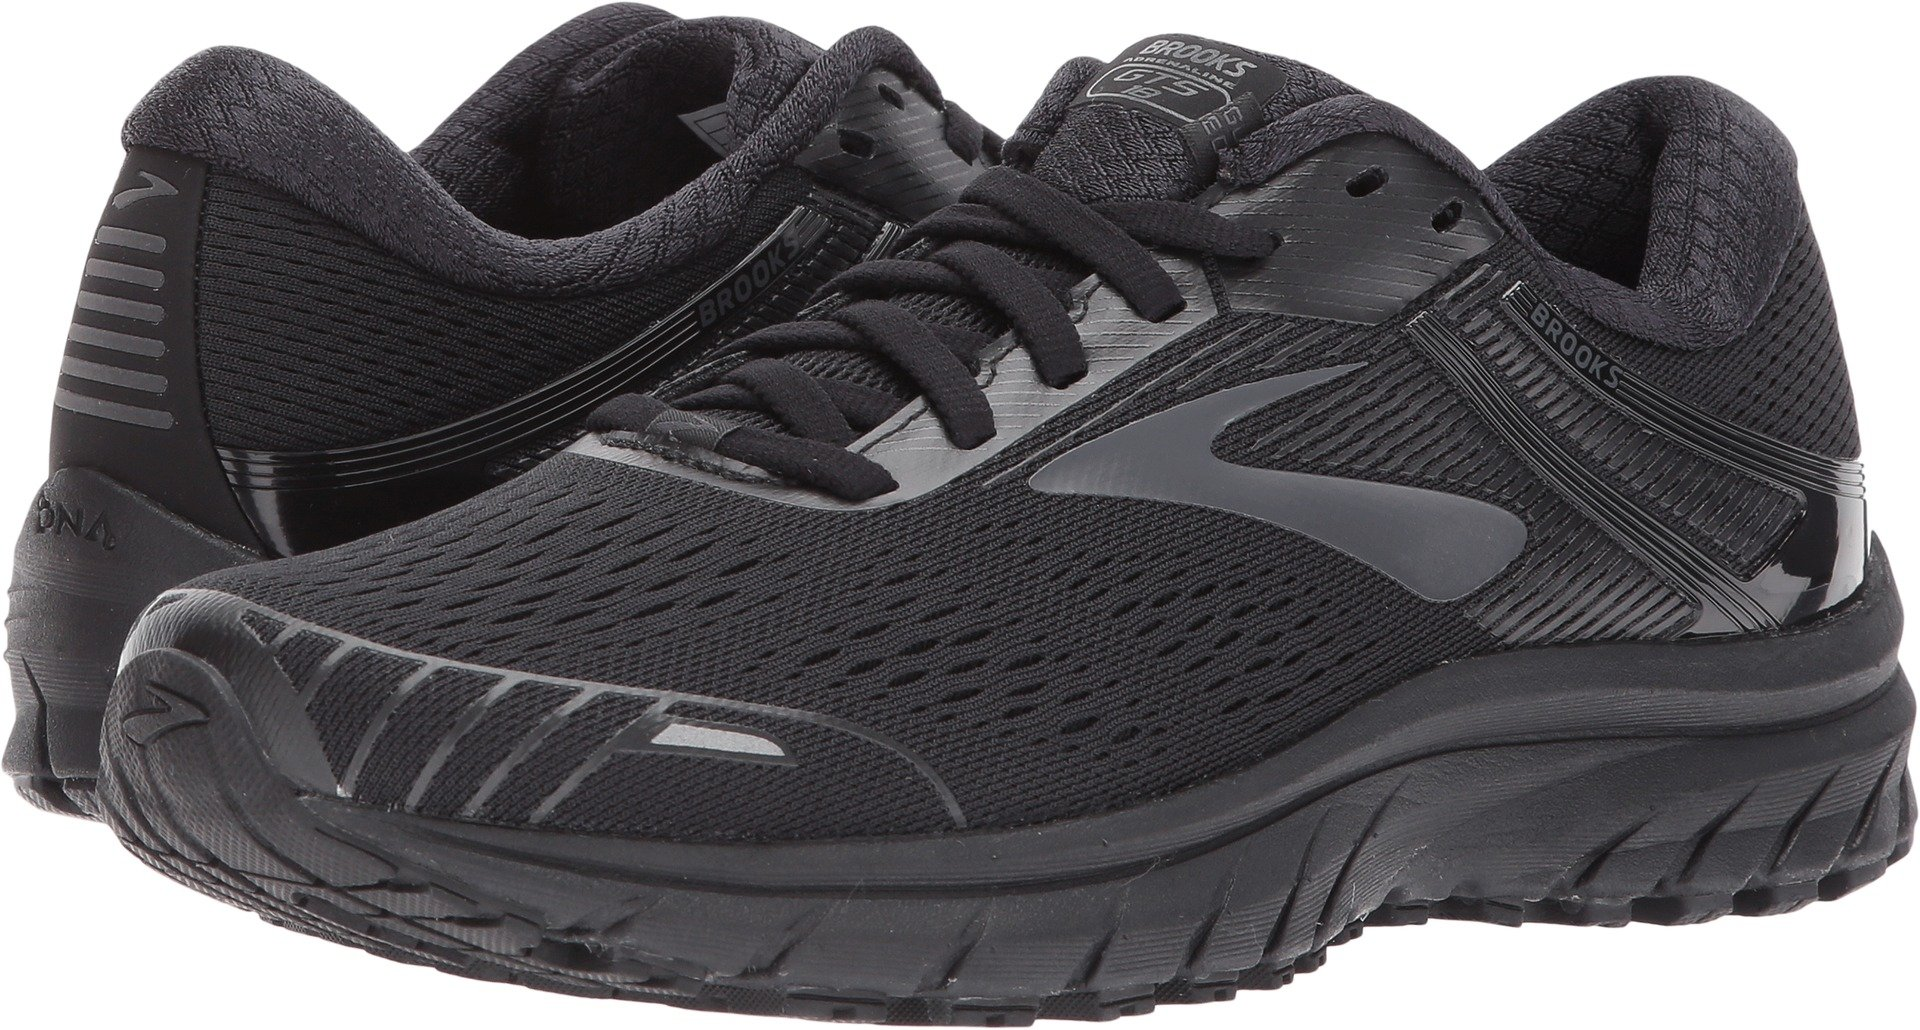 Brooks Women's Adrenaline GTS 18 Black/Black 7.5 B US by Brooks (Image #1)